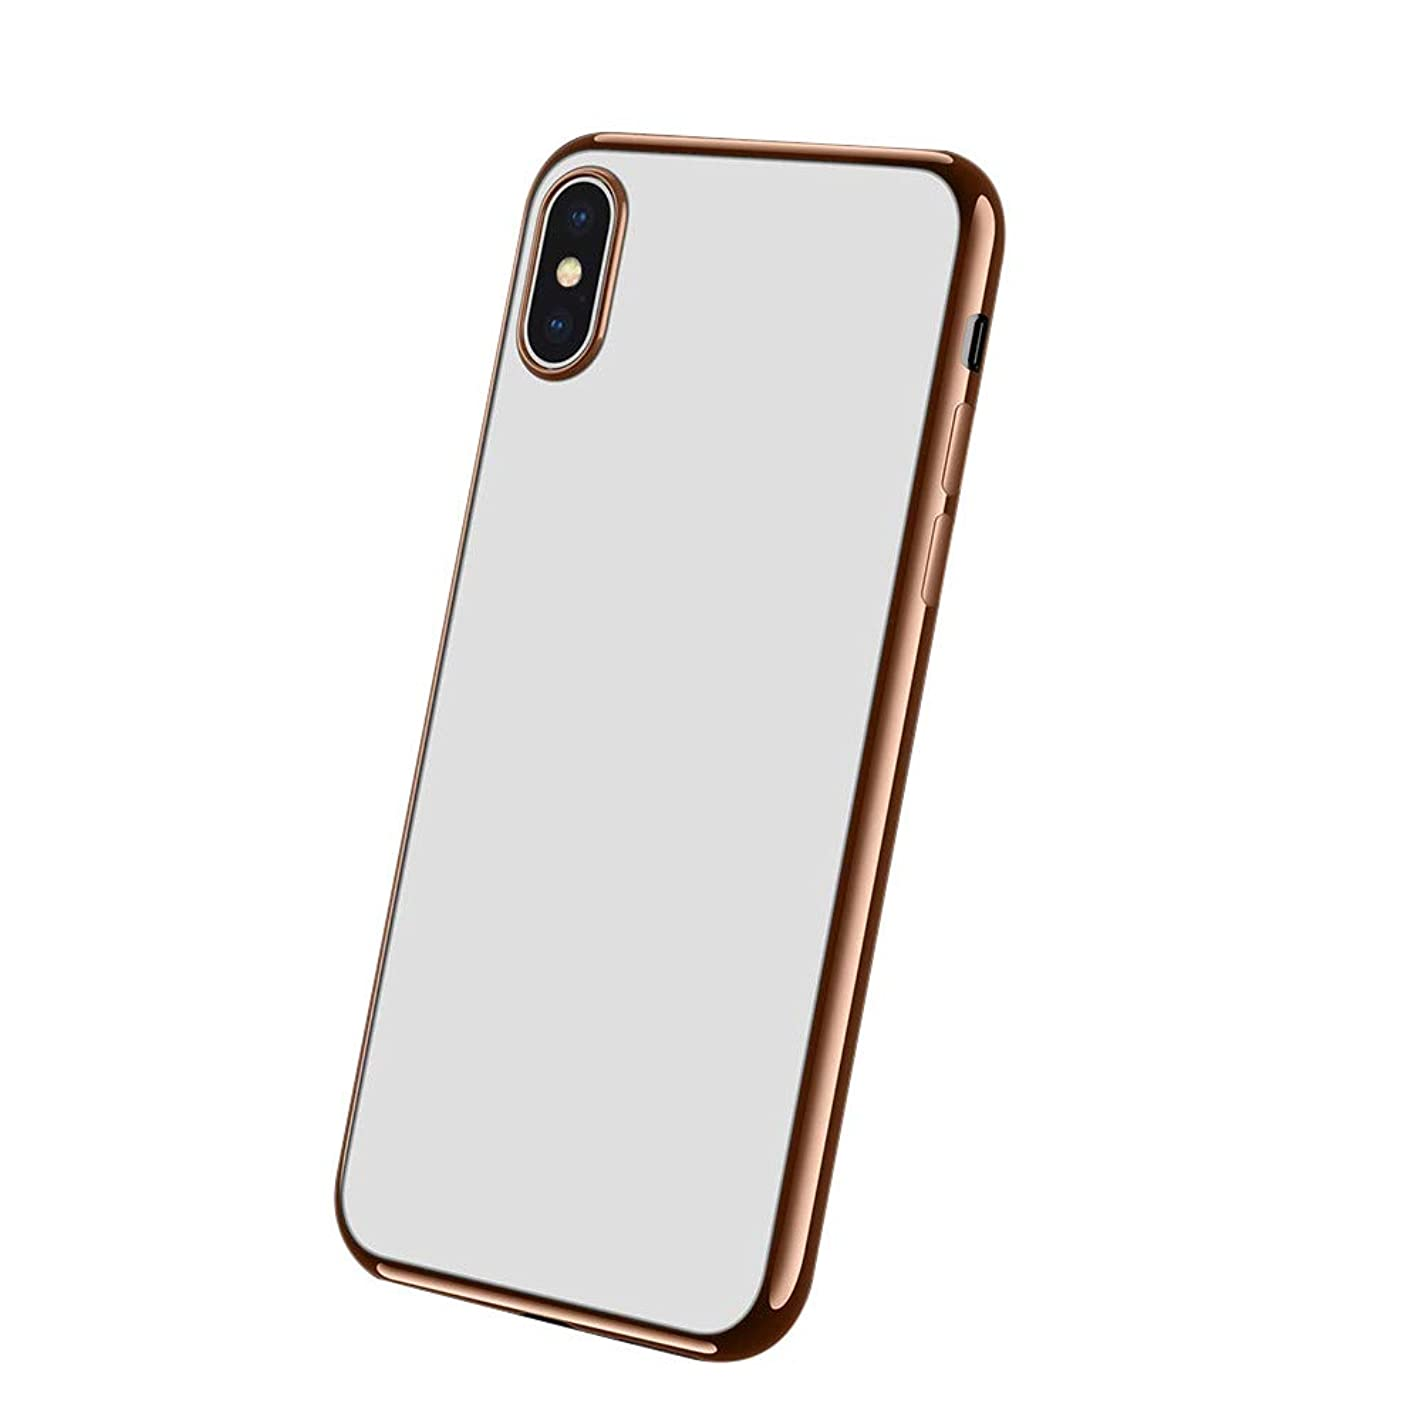 Christmas Hot Sale!!!Kacowpper New Fashion Luxury Ultra Slim Silicone Clear Case Cover Compatible iPhone XS/XS Max/XR